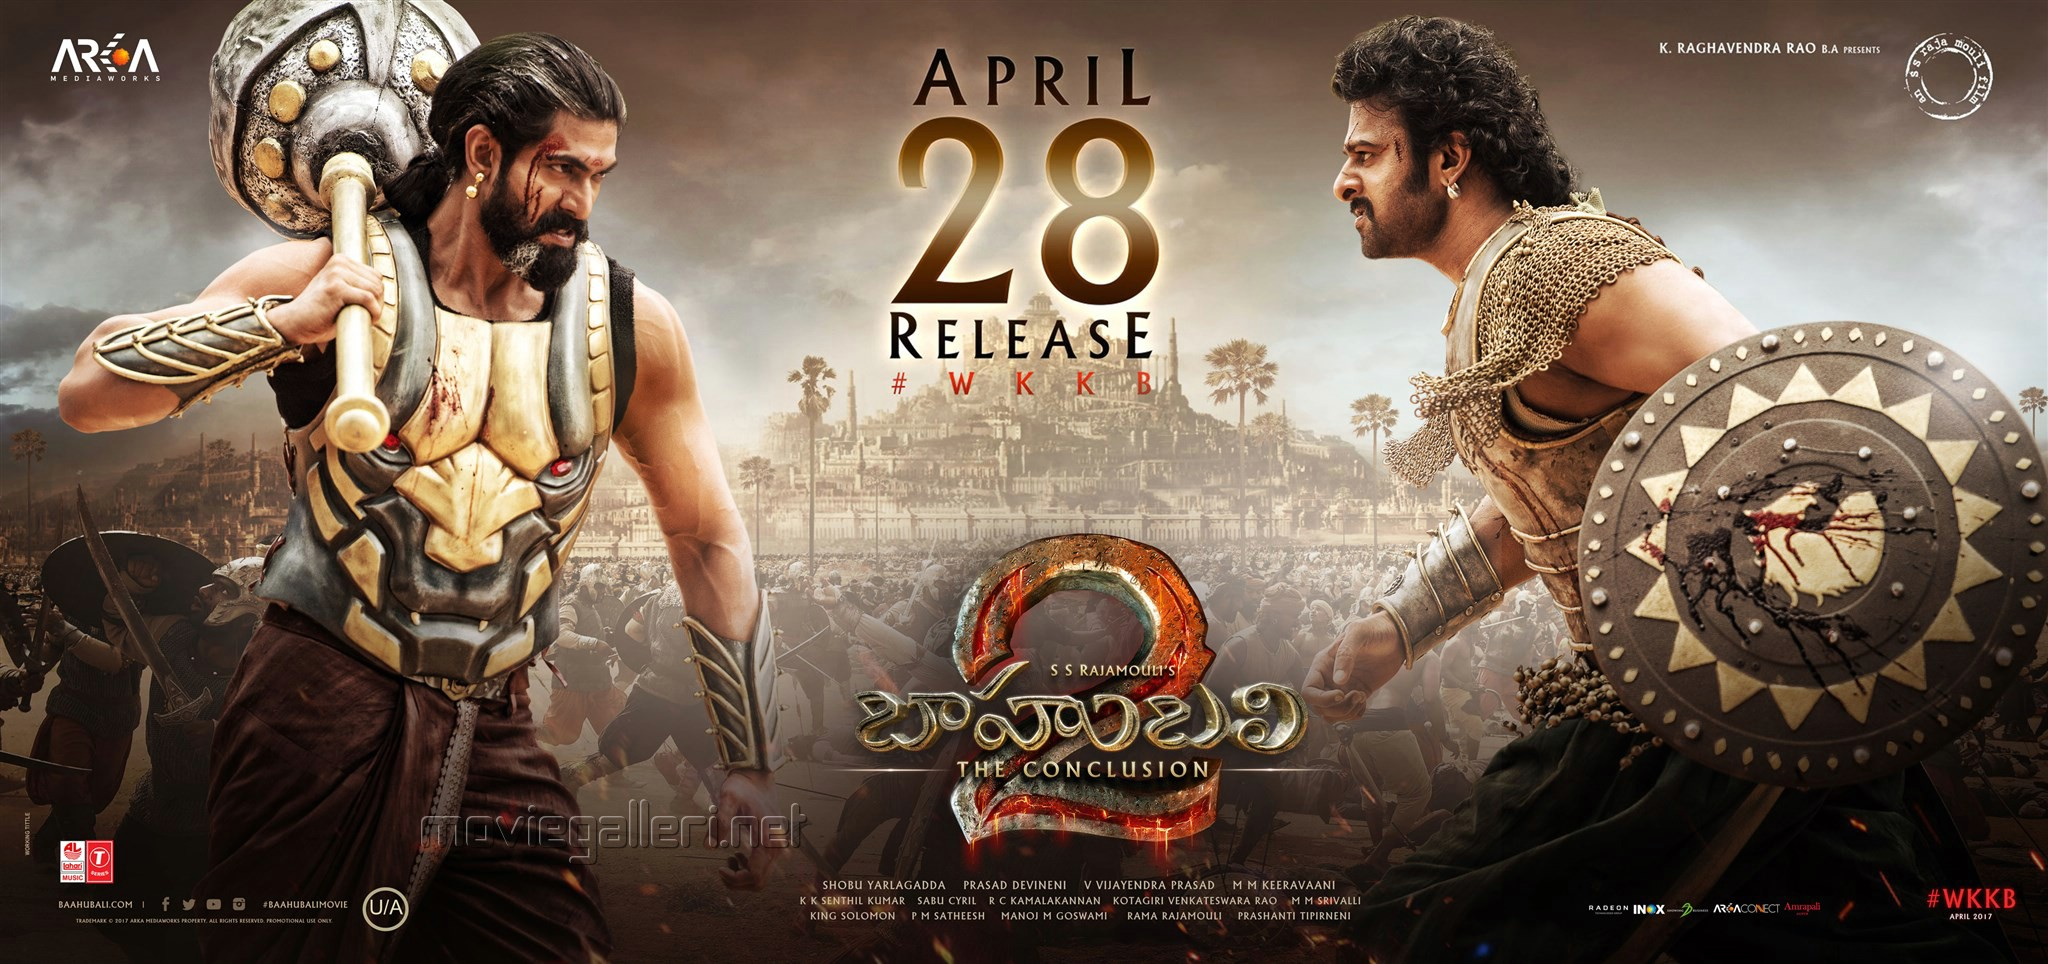 Rana Daggubati, Prabhas in Baahubali 2 Movie April 28 Release Wallpapers